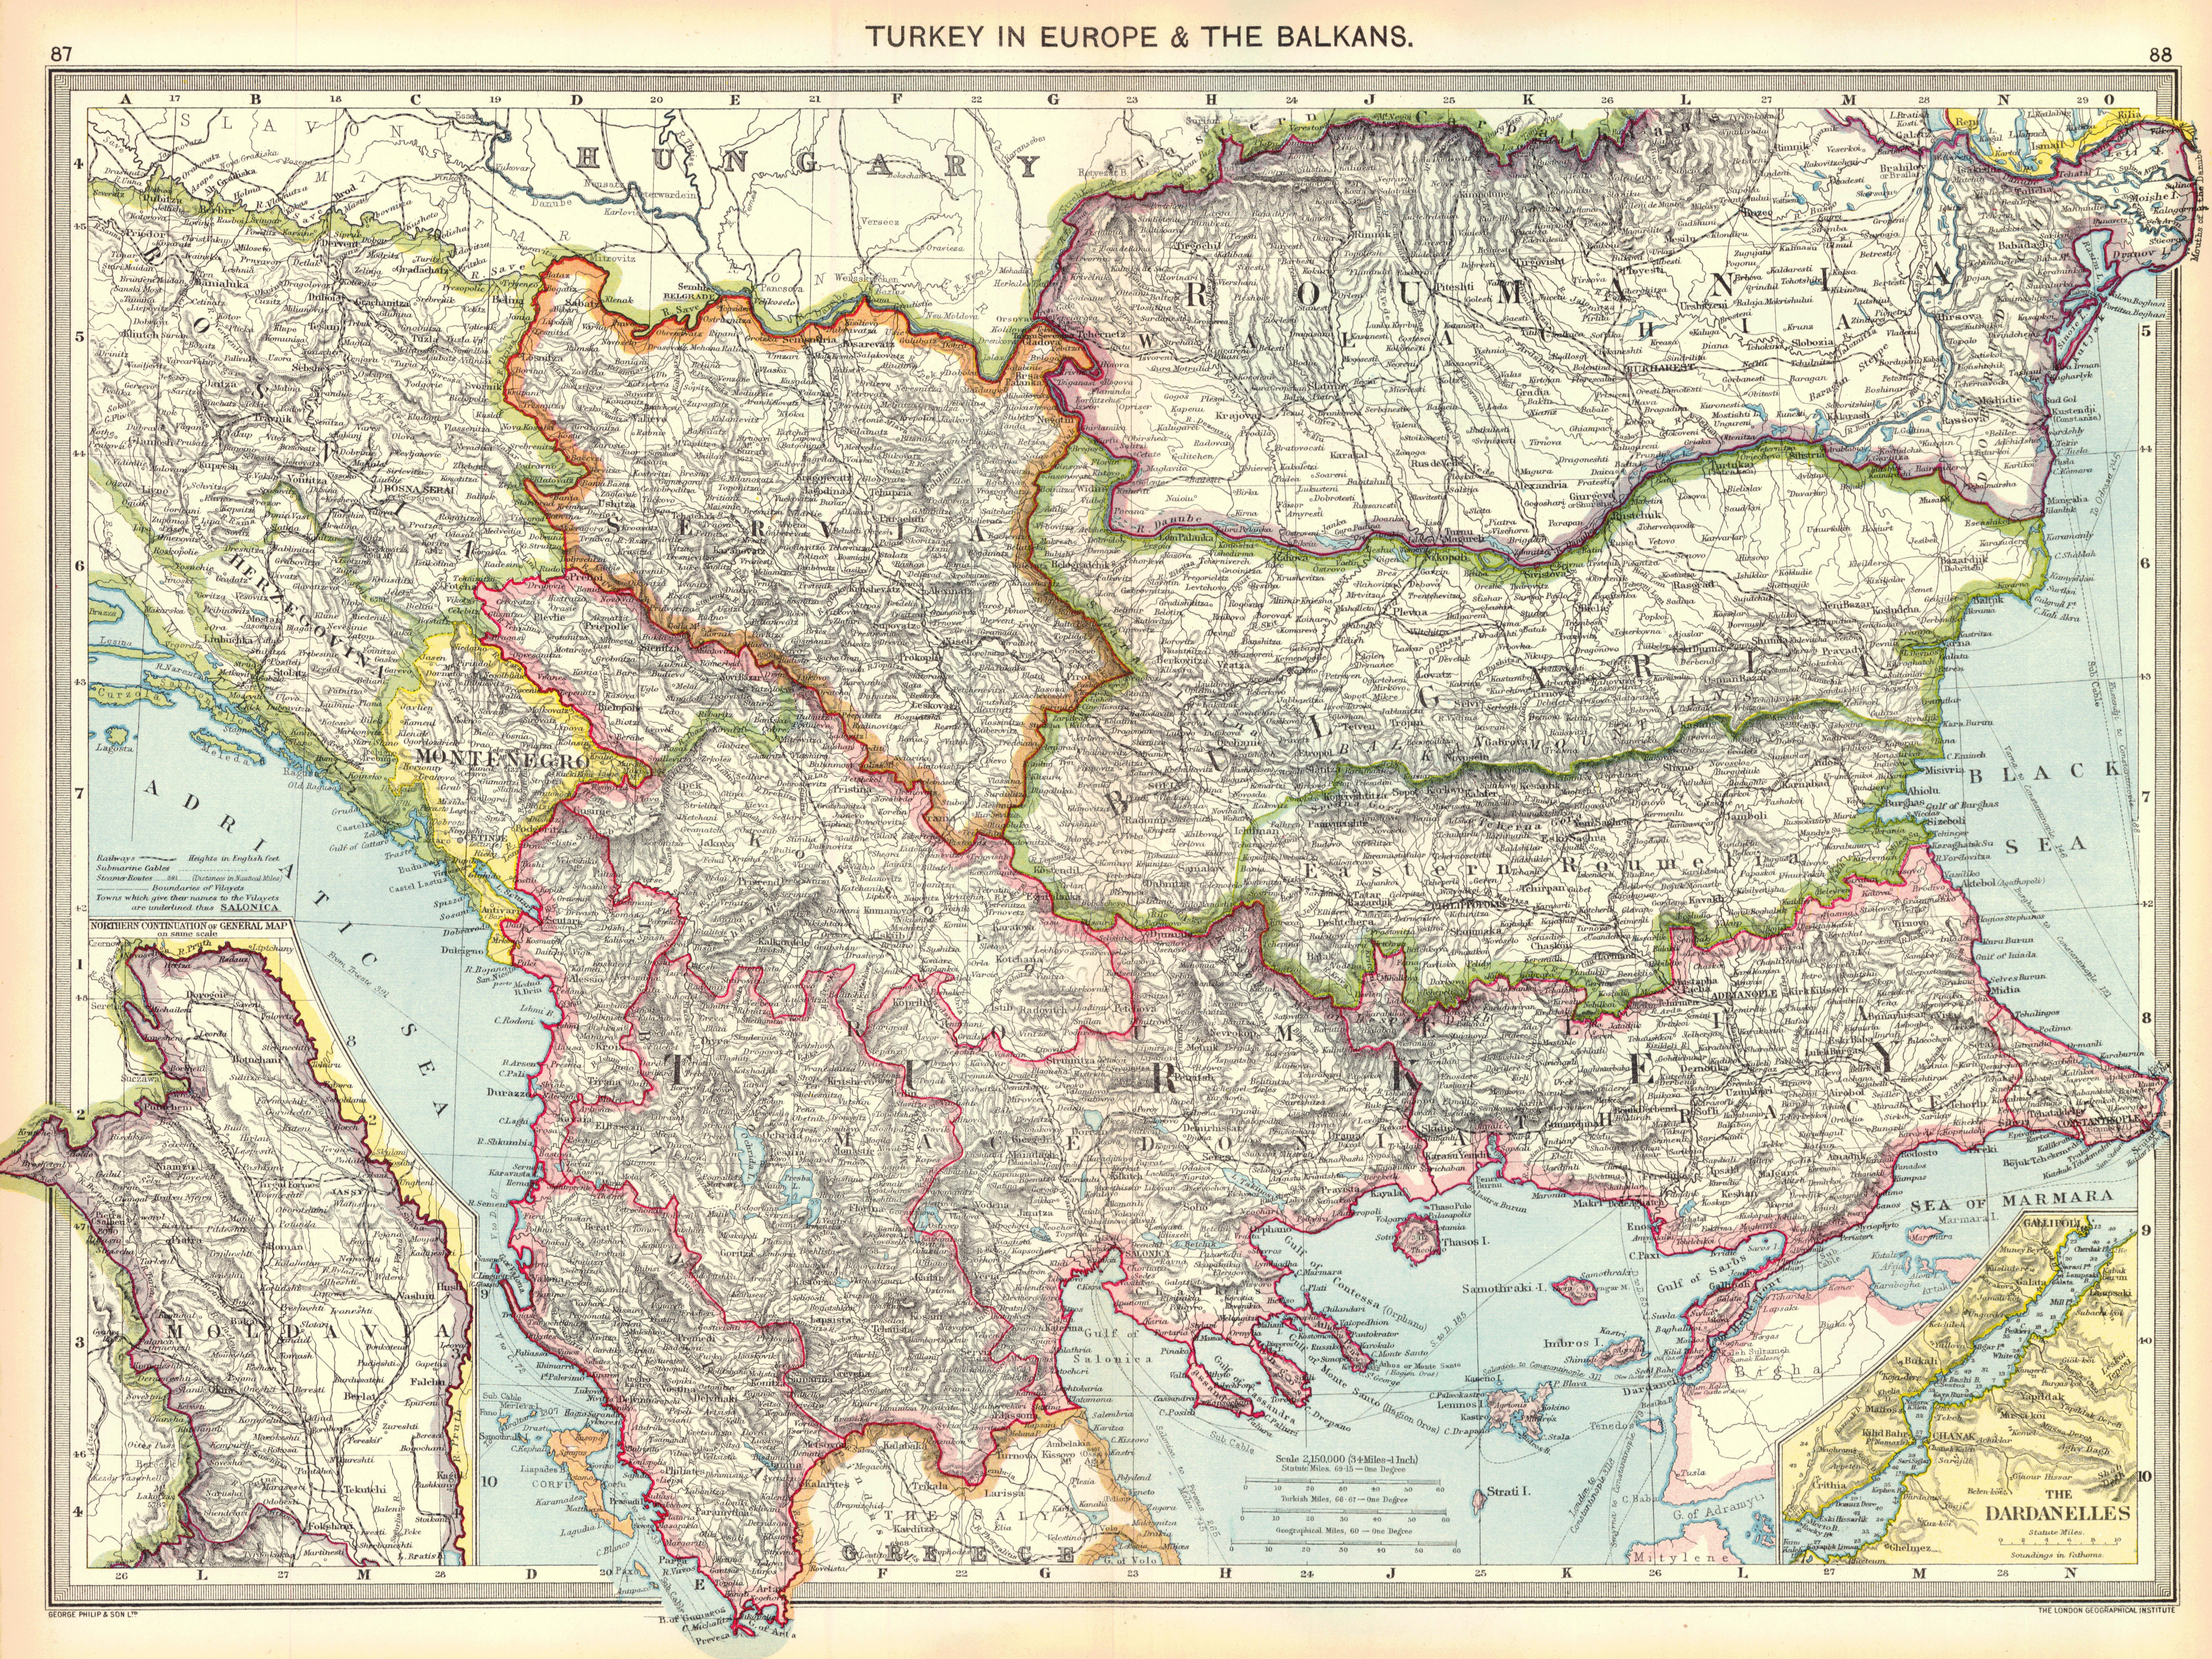 university of alabama map with File Turkey In Europe And The Balkans  1910 on Page 4 additionally Texas Tech C us Map further DePaul University further Longleaf Pine Ecosystem besides Using Nasa Eos Data For Fire Management In Colombia.